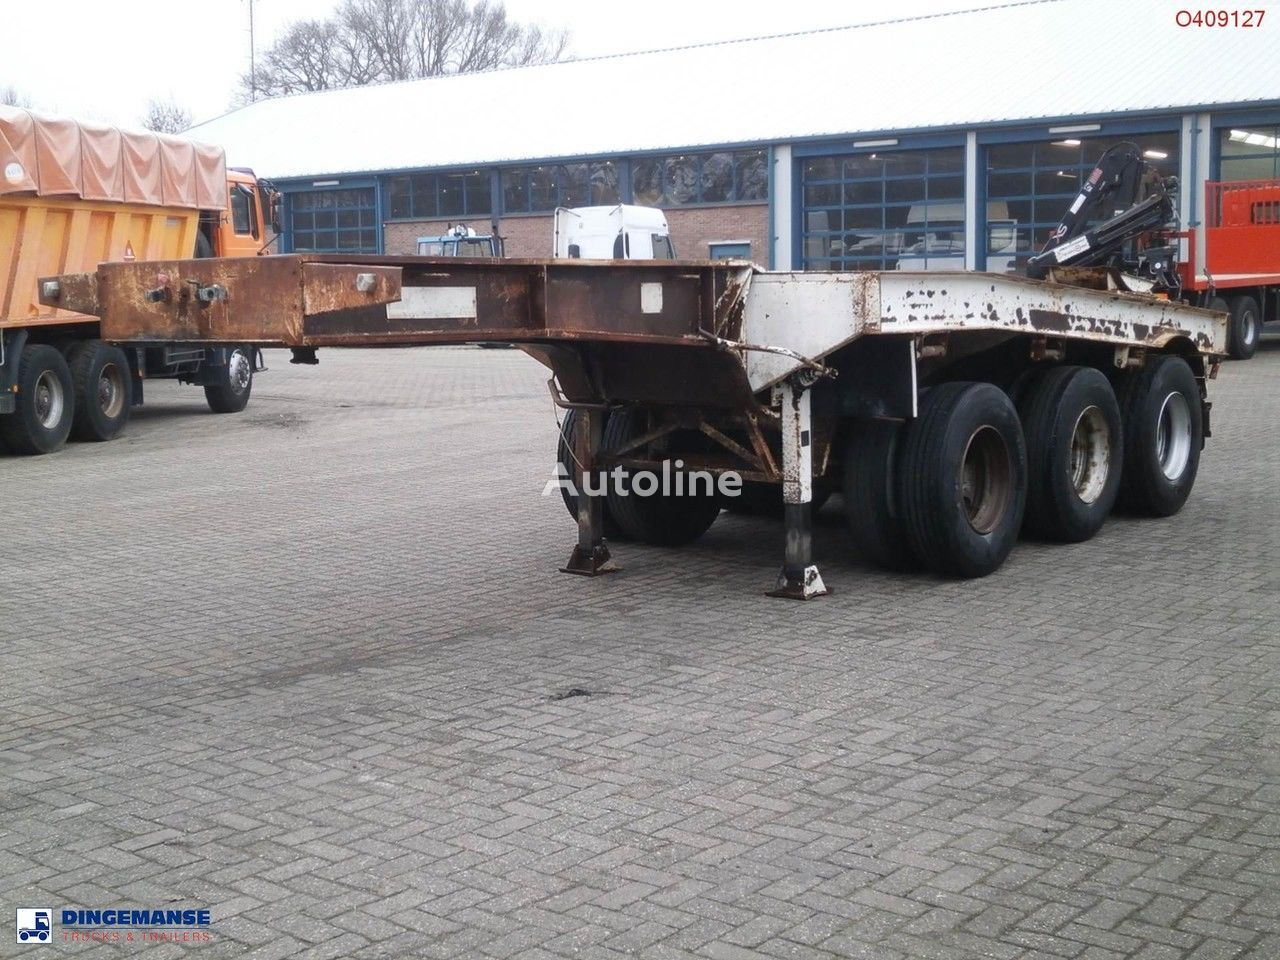 TRAYL-ONA 3-axle dolly trailer / 62000 kg containertransporter oplegger